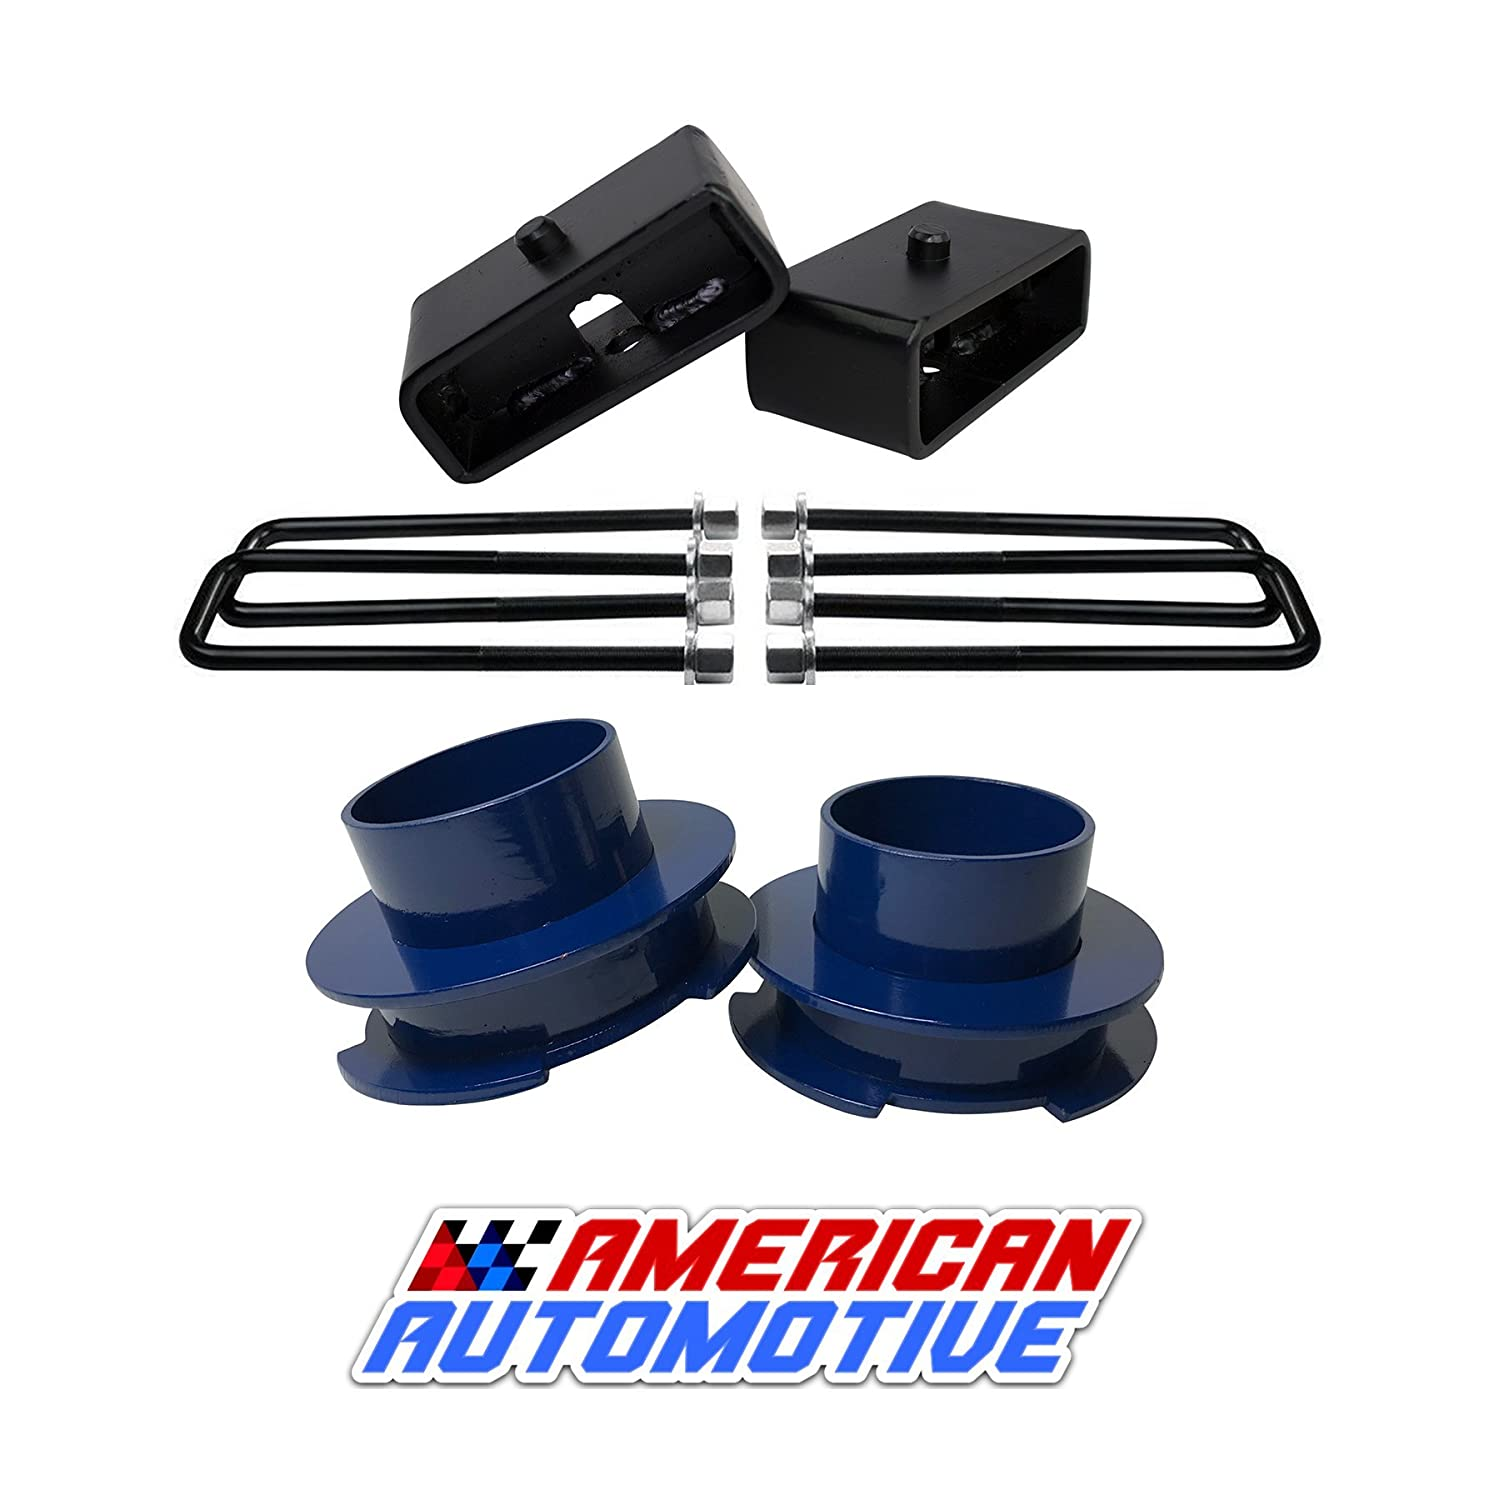 1999-2007 Silverado Lift Kit 2WD 3' Front Spring Spacers + 2' Rear Blocks Made in USA Steel Road Fury TIG Welded American Automotive CS1BK30SB20UBS10-023